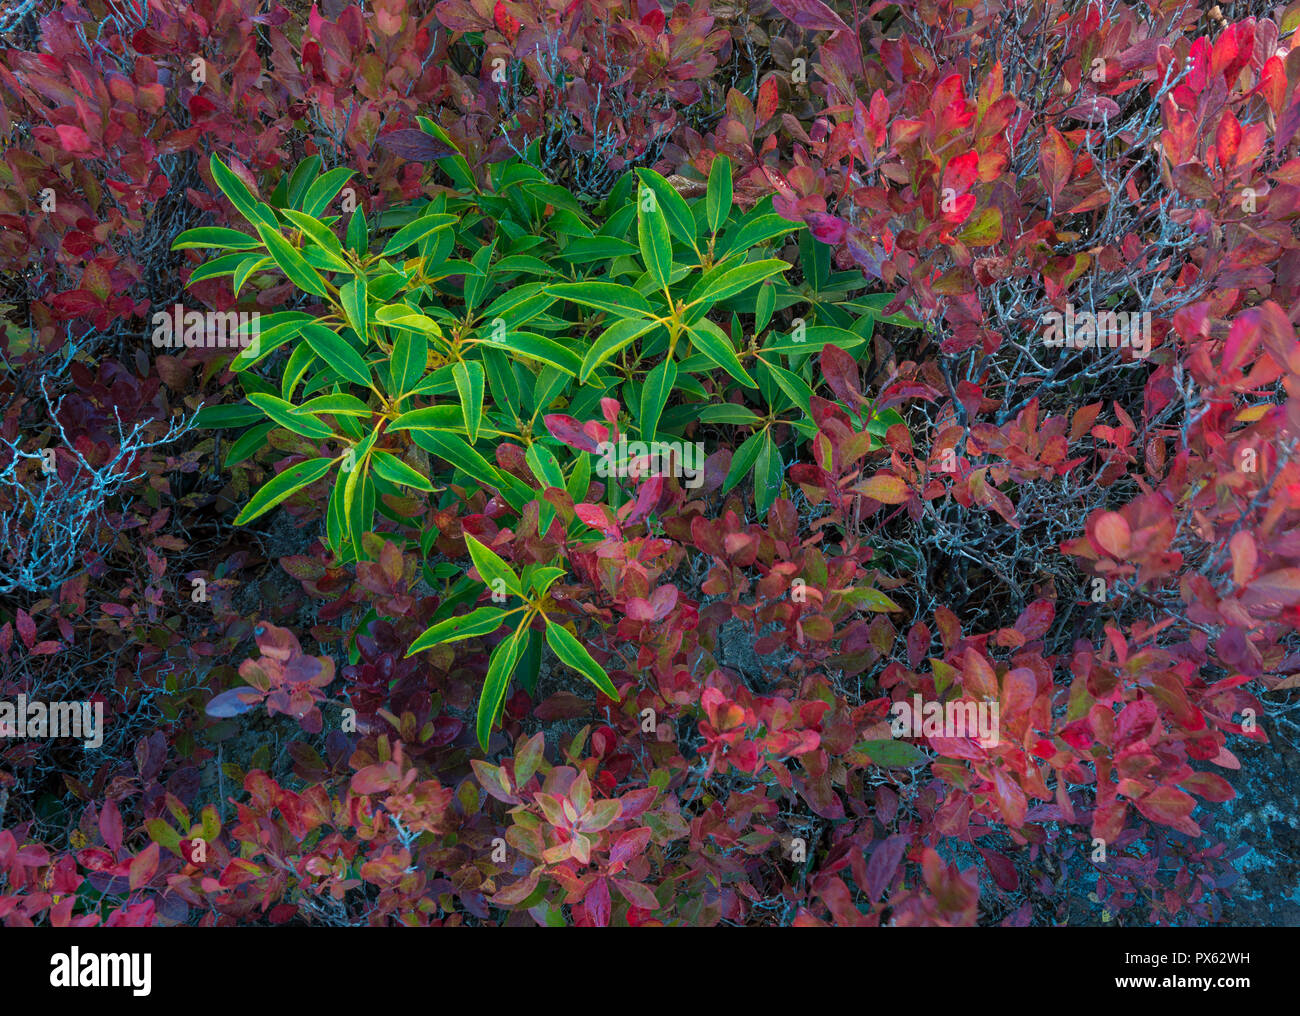 Mountain laurel surrounded by blueberry bushes in autumn on the heath barrens of Dolly Sods Wilderness in West Virginia - Stock Image